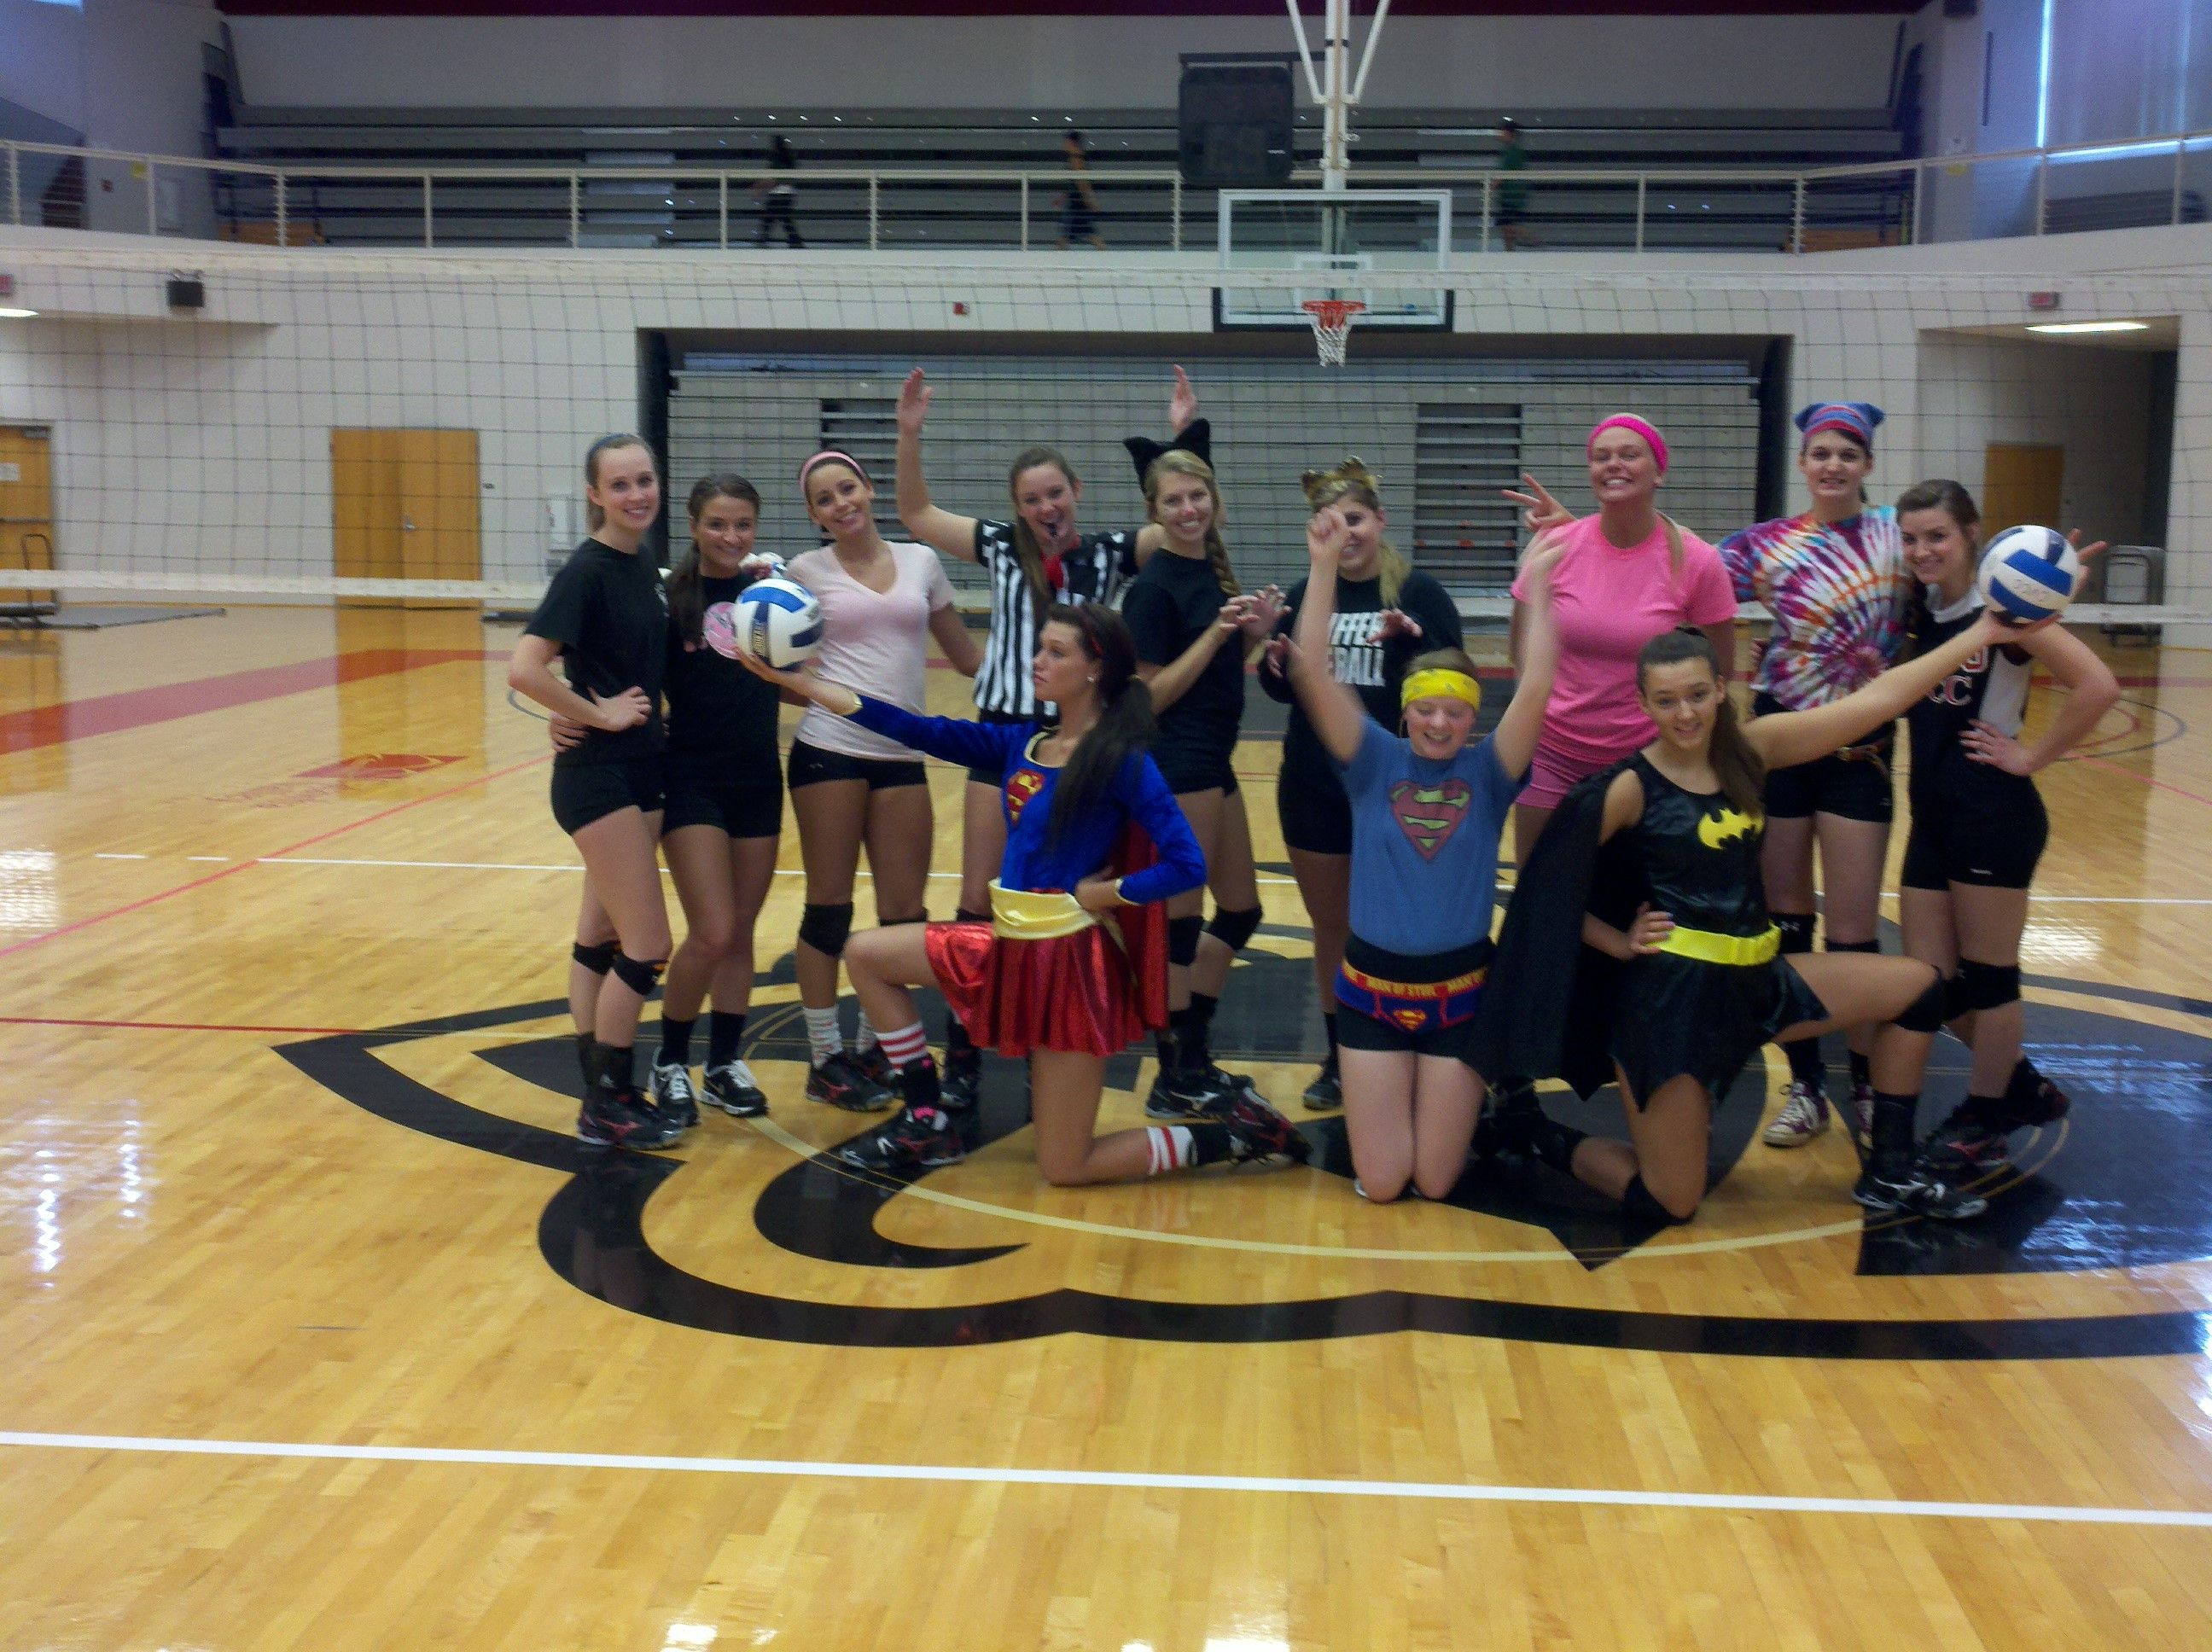 Cvcc This Is What Happens When You Practice On Halloween Volleyball Basketball Court Players